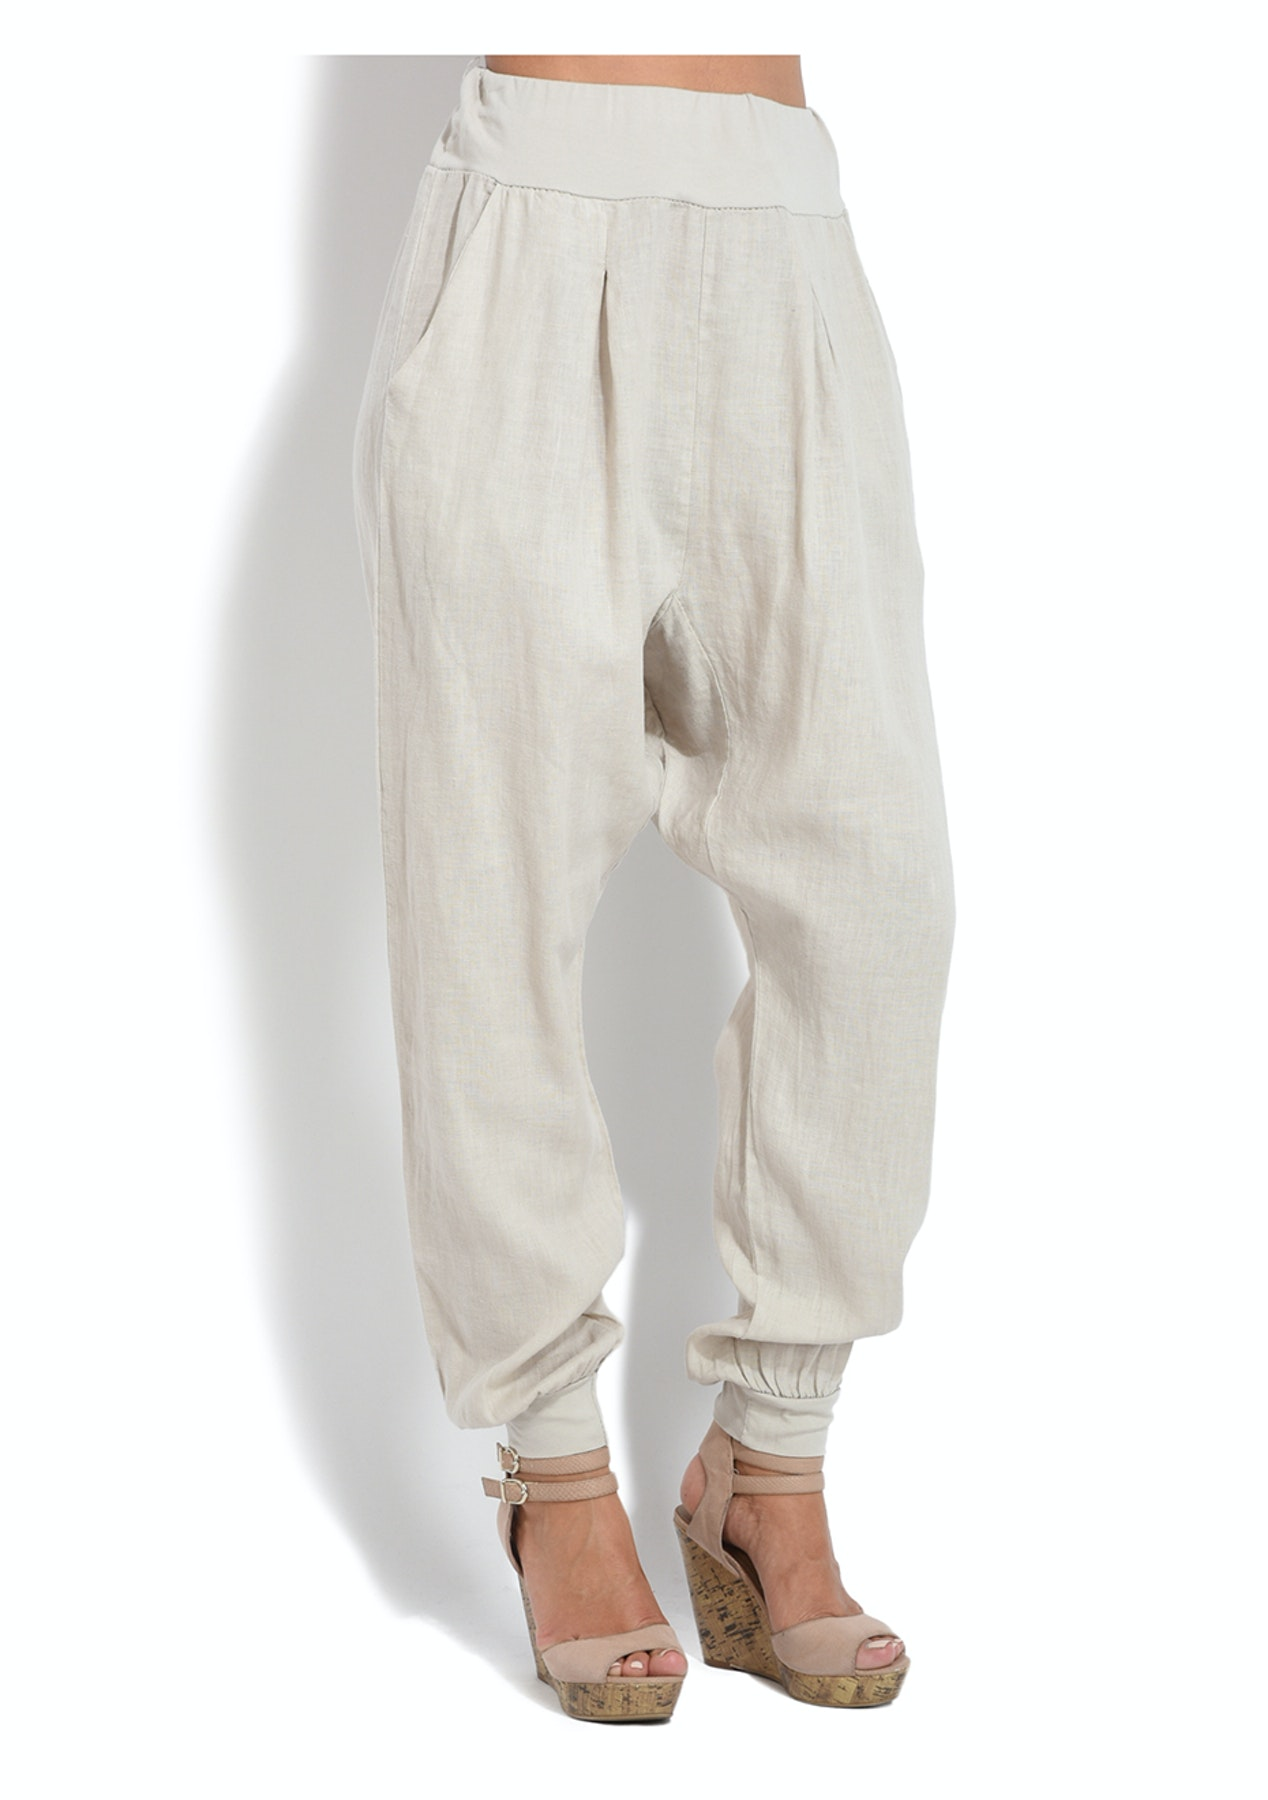 57943923cb6 Melissa Harem Pants - Beige - Italian Made Linen Up To 76% Off - Onceit